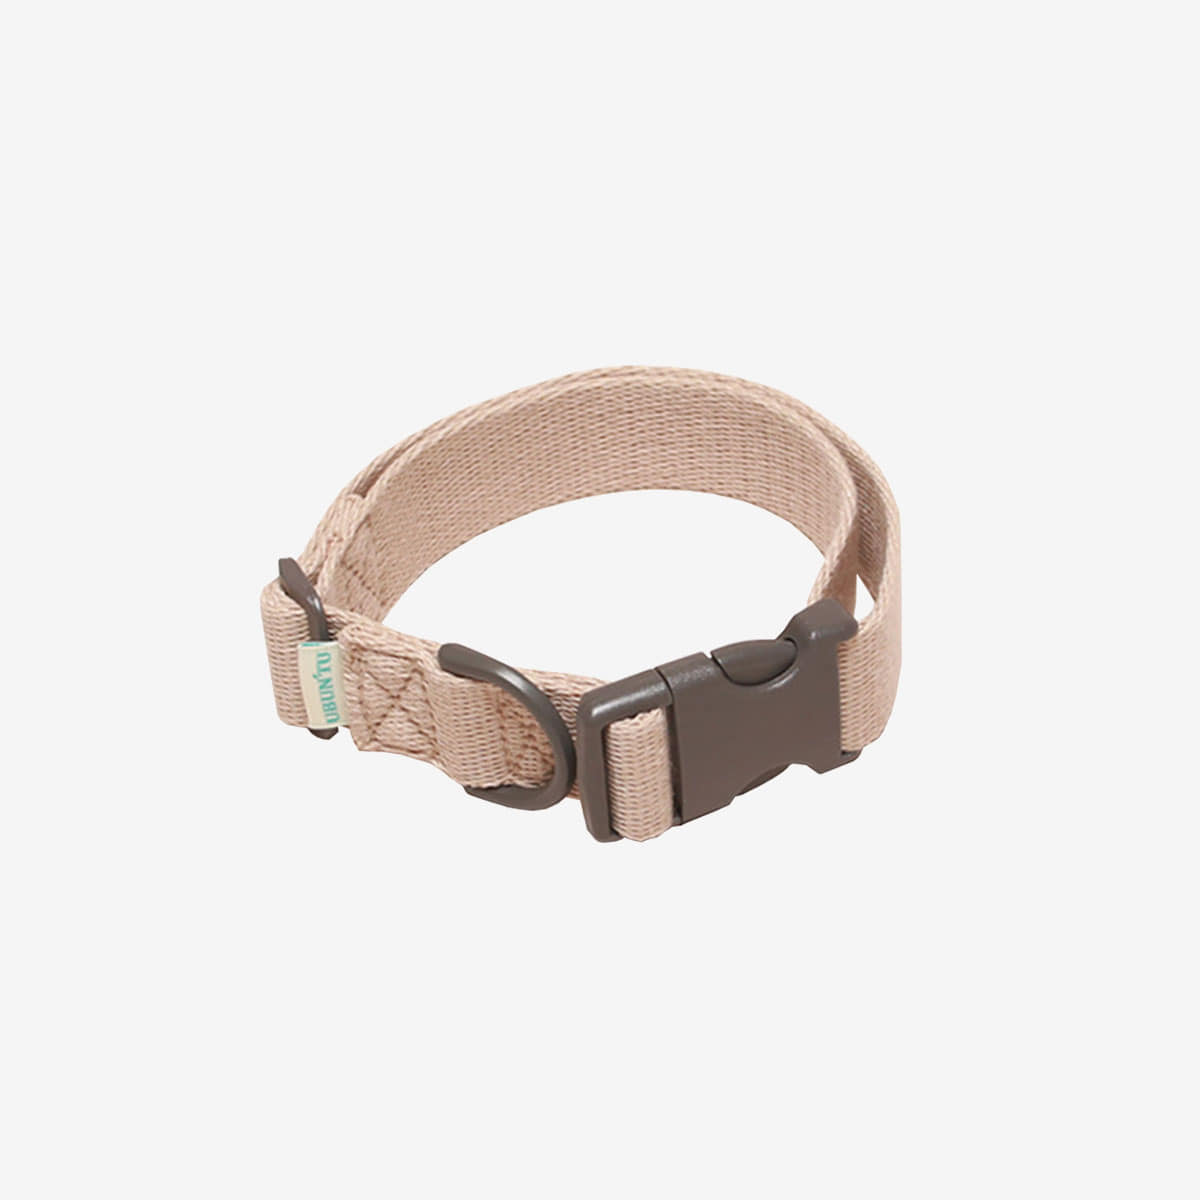 Daily collar _ beige